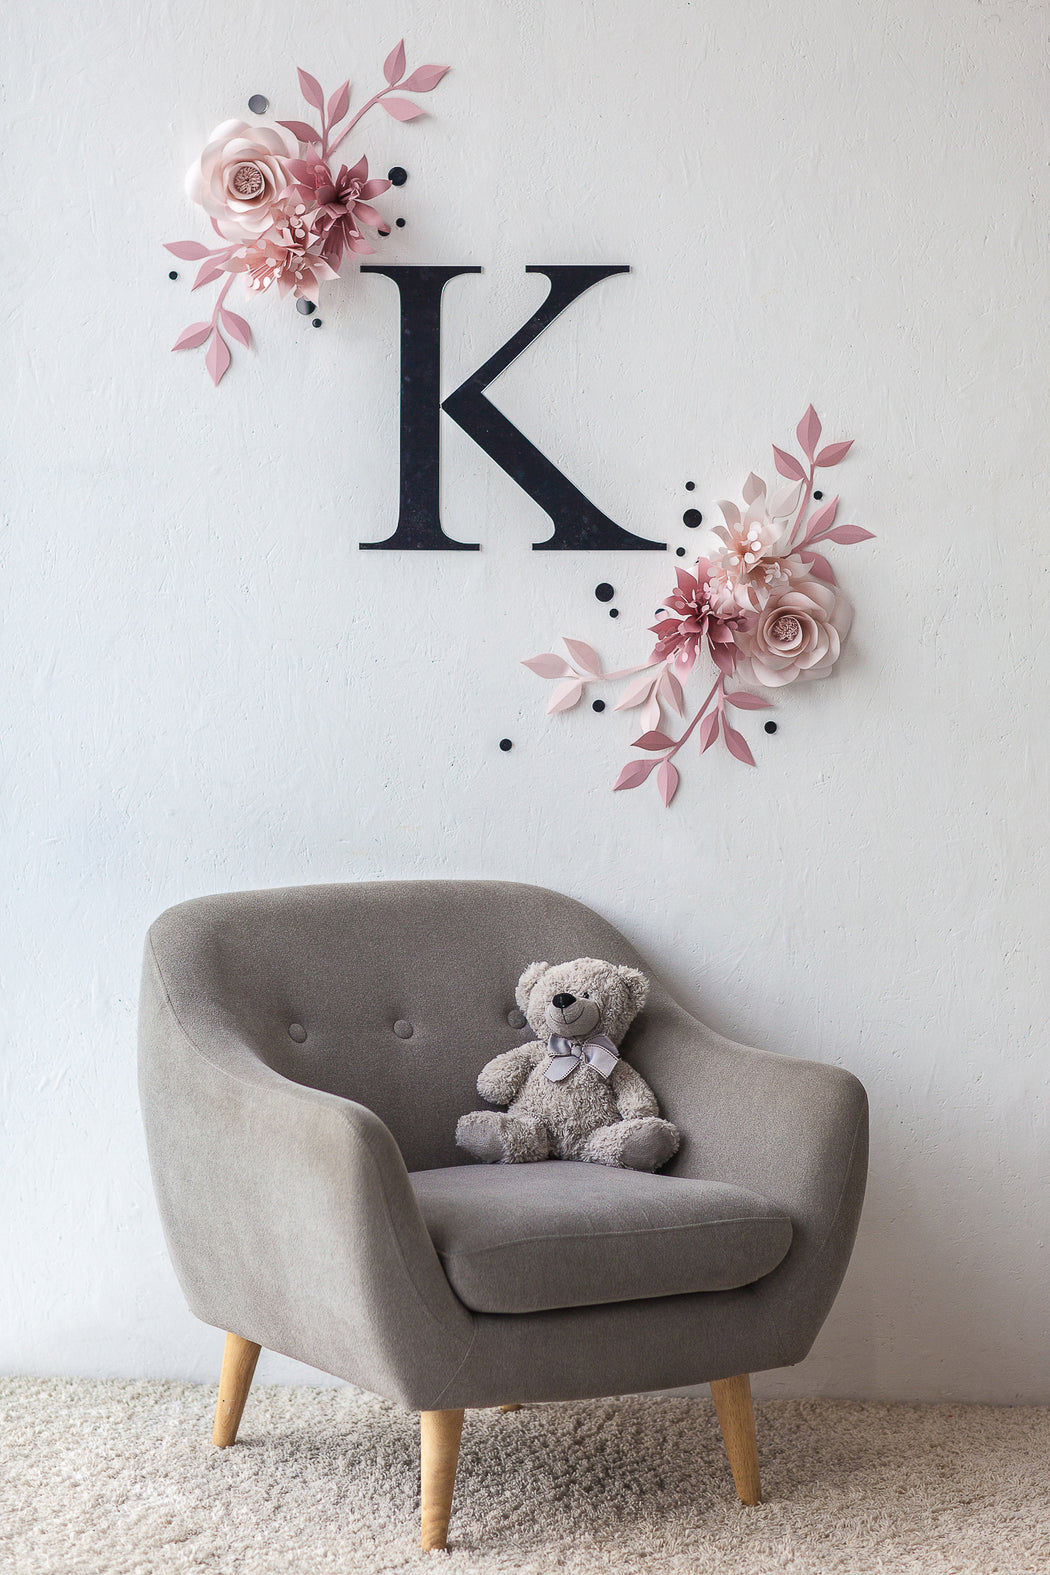 PAPER FLOWER NURSERY DECOR - NURSERY WALL DECOR - Mio Gallery